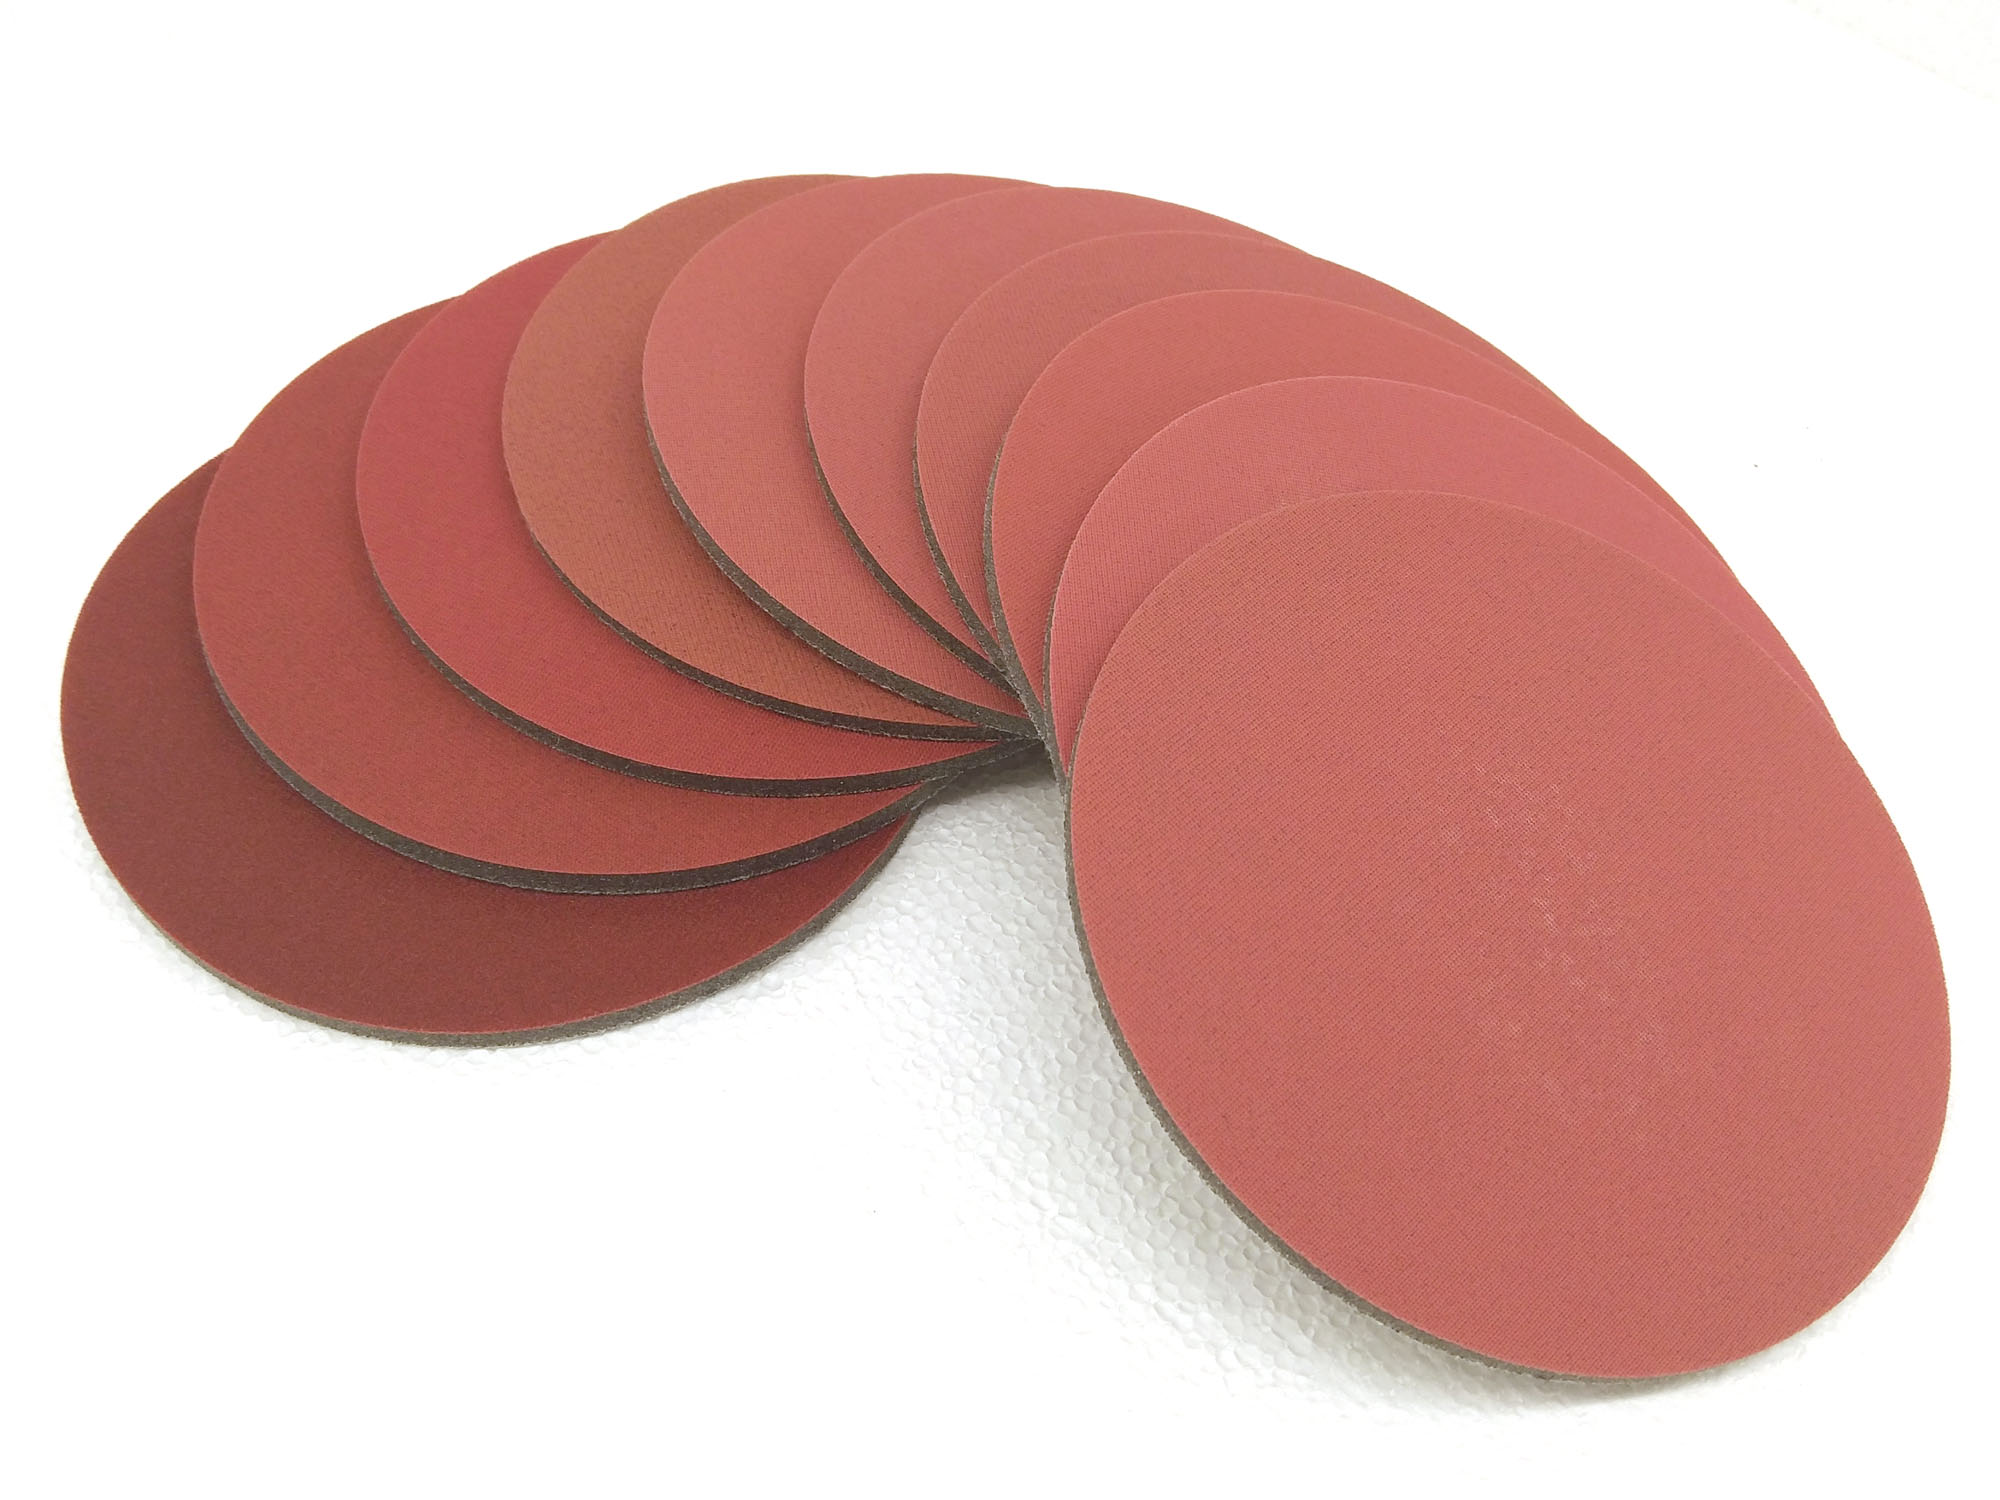 air 3 Inch Sanding and Polishing Discs Outperform Abralon - 10 Pack by Sia